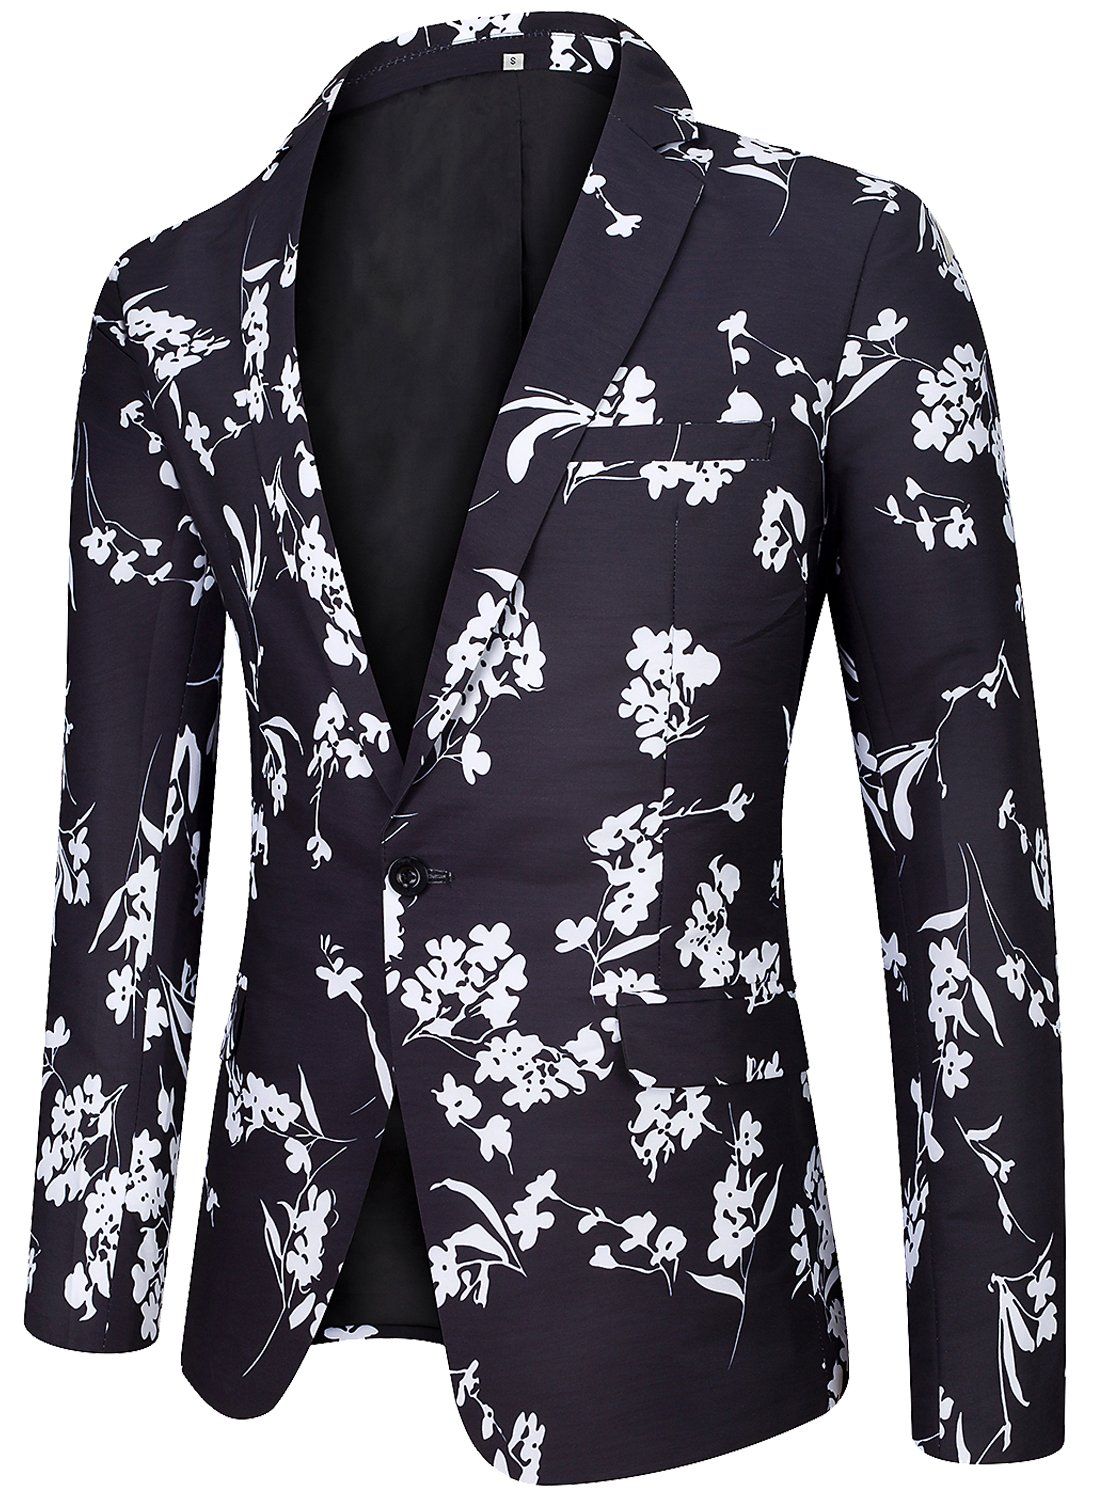 Men's Regular Fit Casual One Button Blazer Jacket Summer Fitted Sports Suit Coat Floral D Large